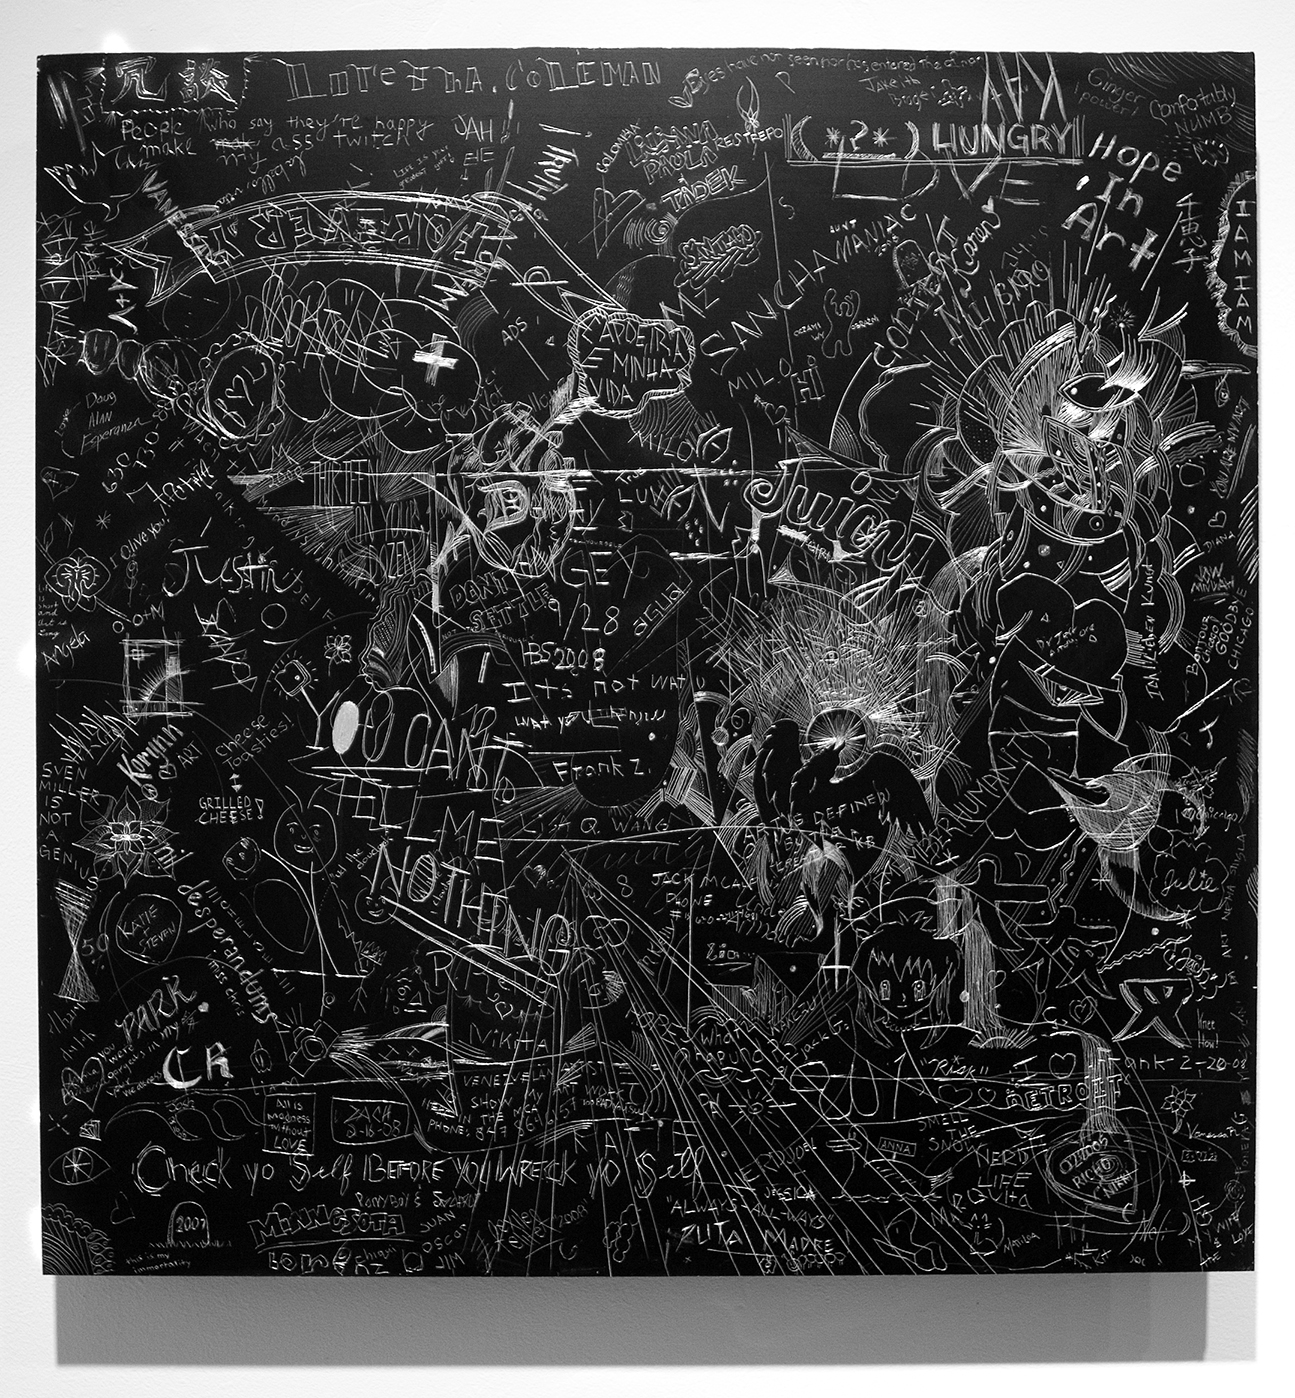 MCA 2,Collaborative incised drawings on aluminum with baked enamel finish made w/ the Museum of Contemporary Art Chicago's visitors and staff, 24 X 24 inches, 2008